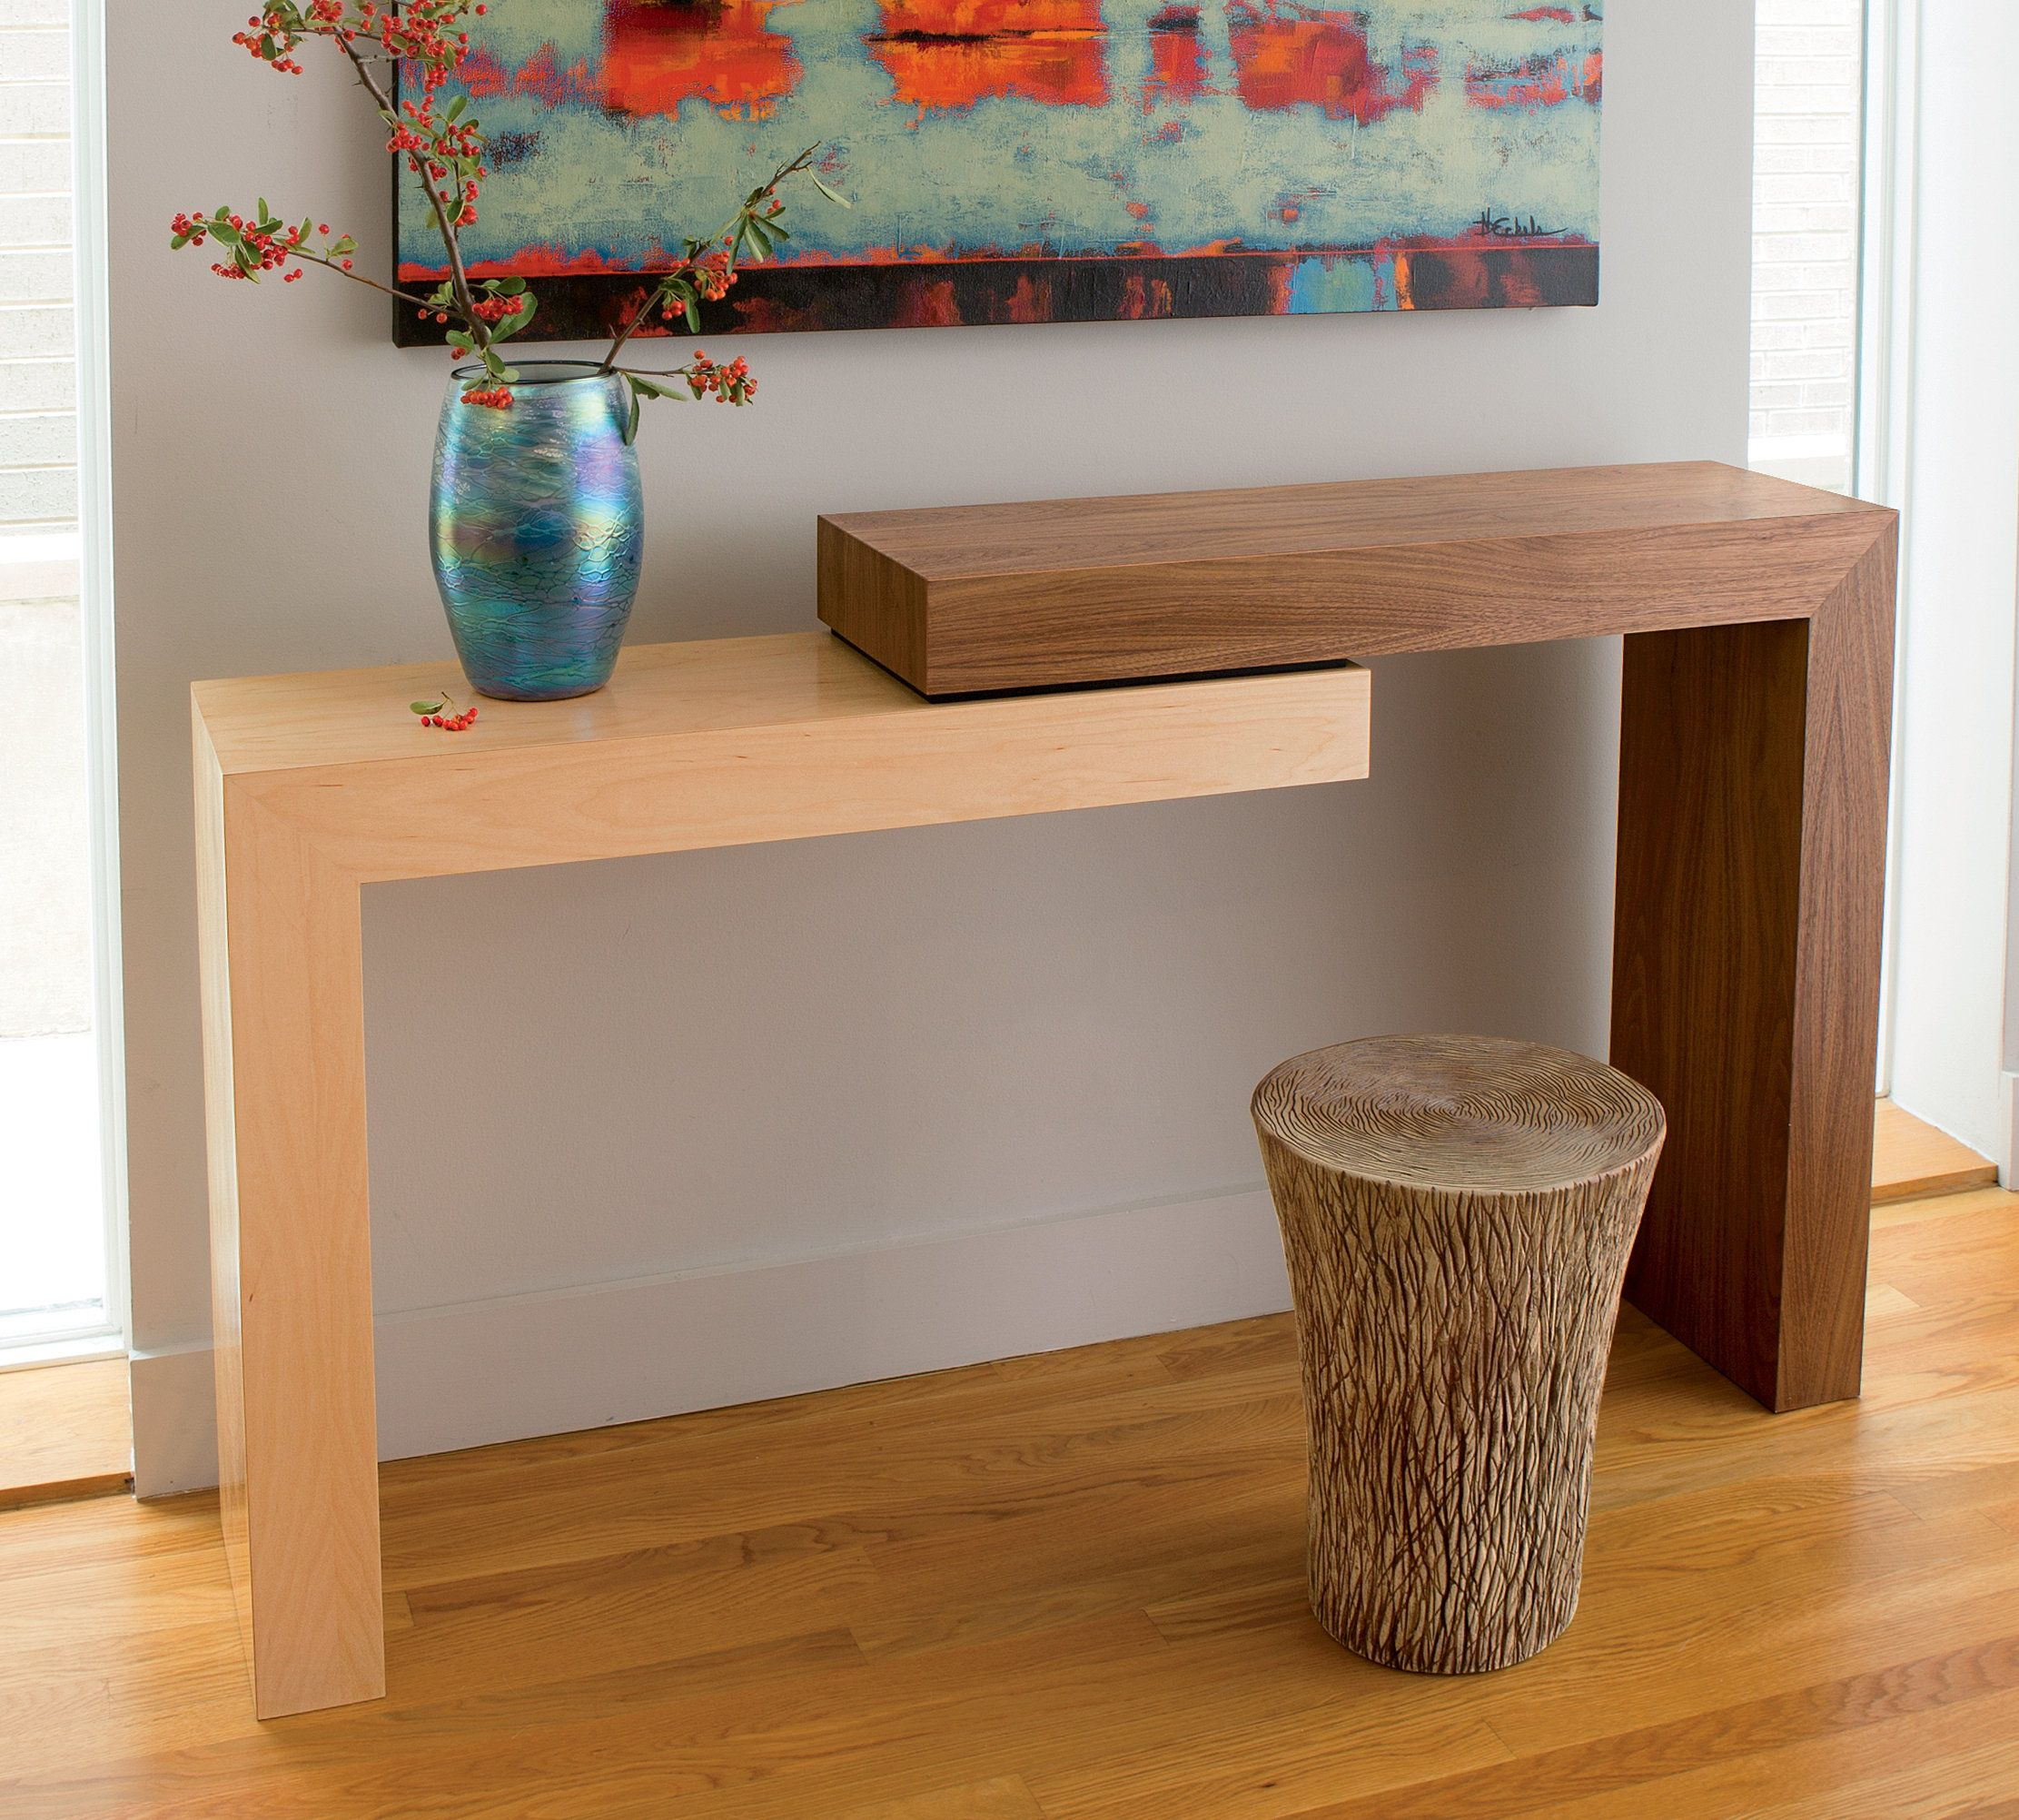 Stepped Console By Todd Leback Wood Console Table Artful Home Wood Console Diy Furniture Wood Console Table